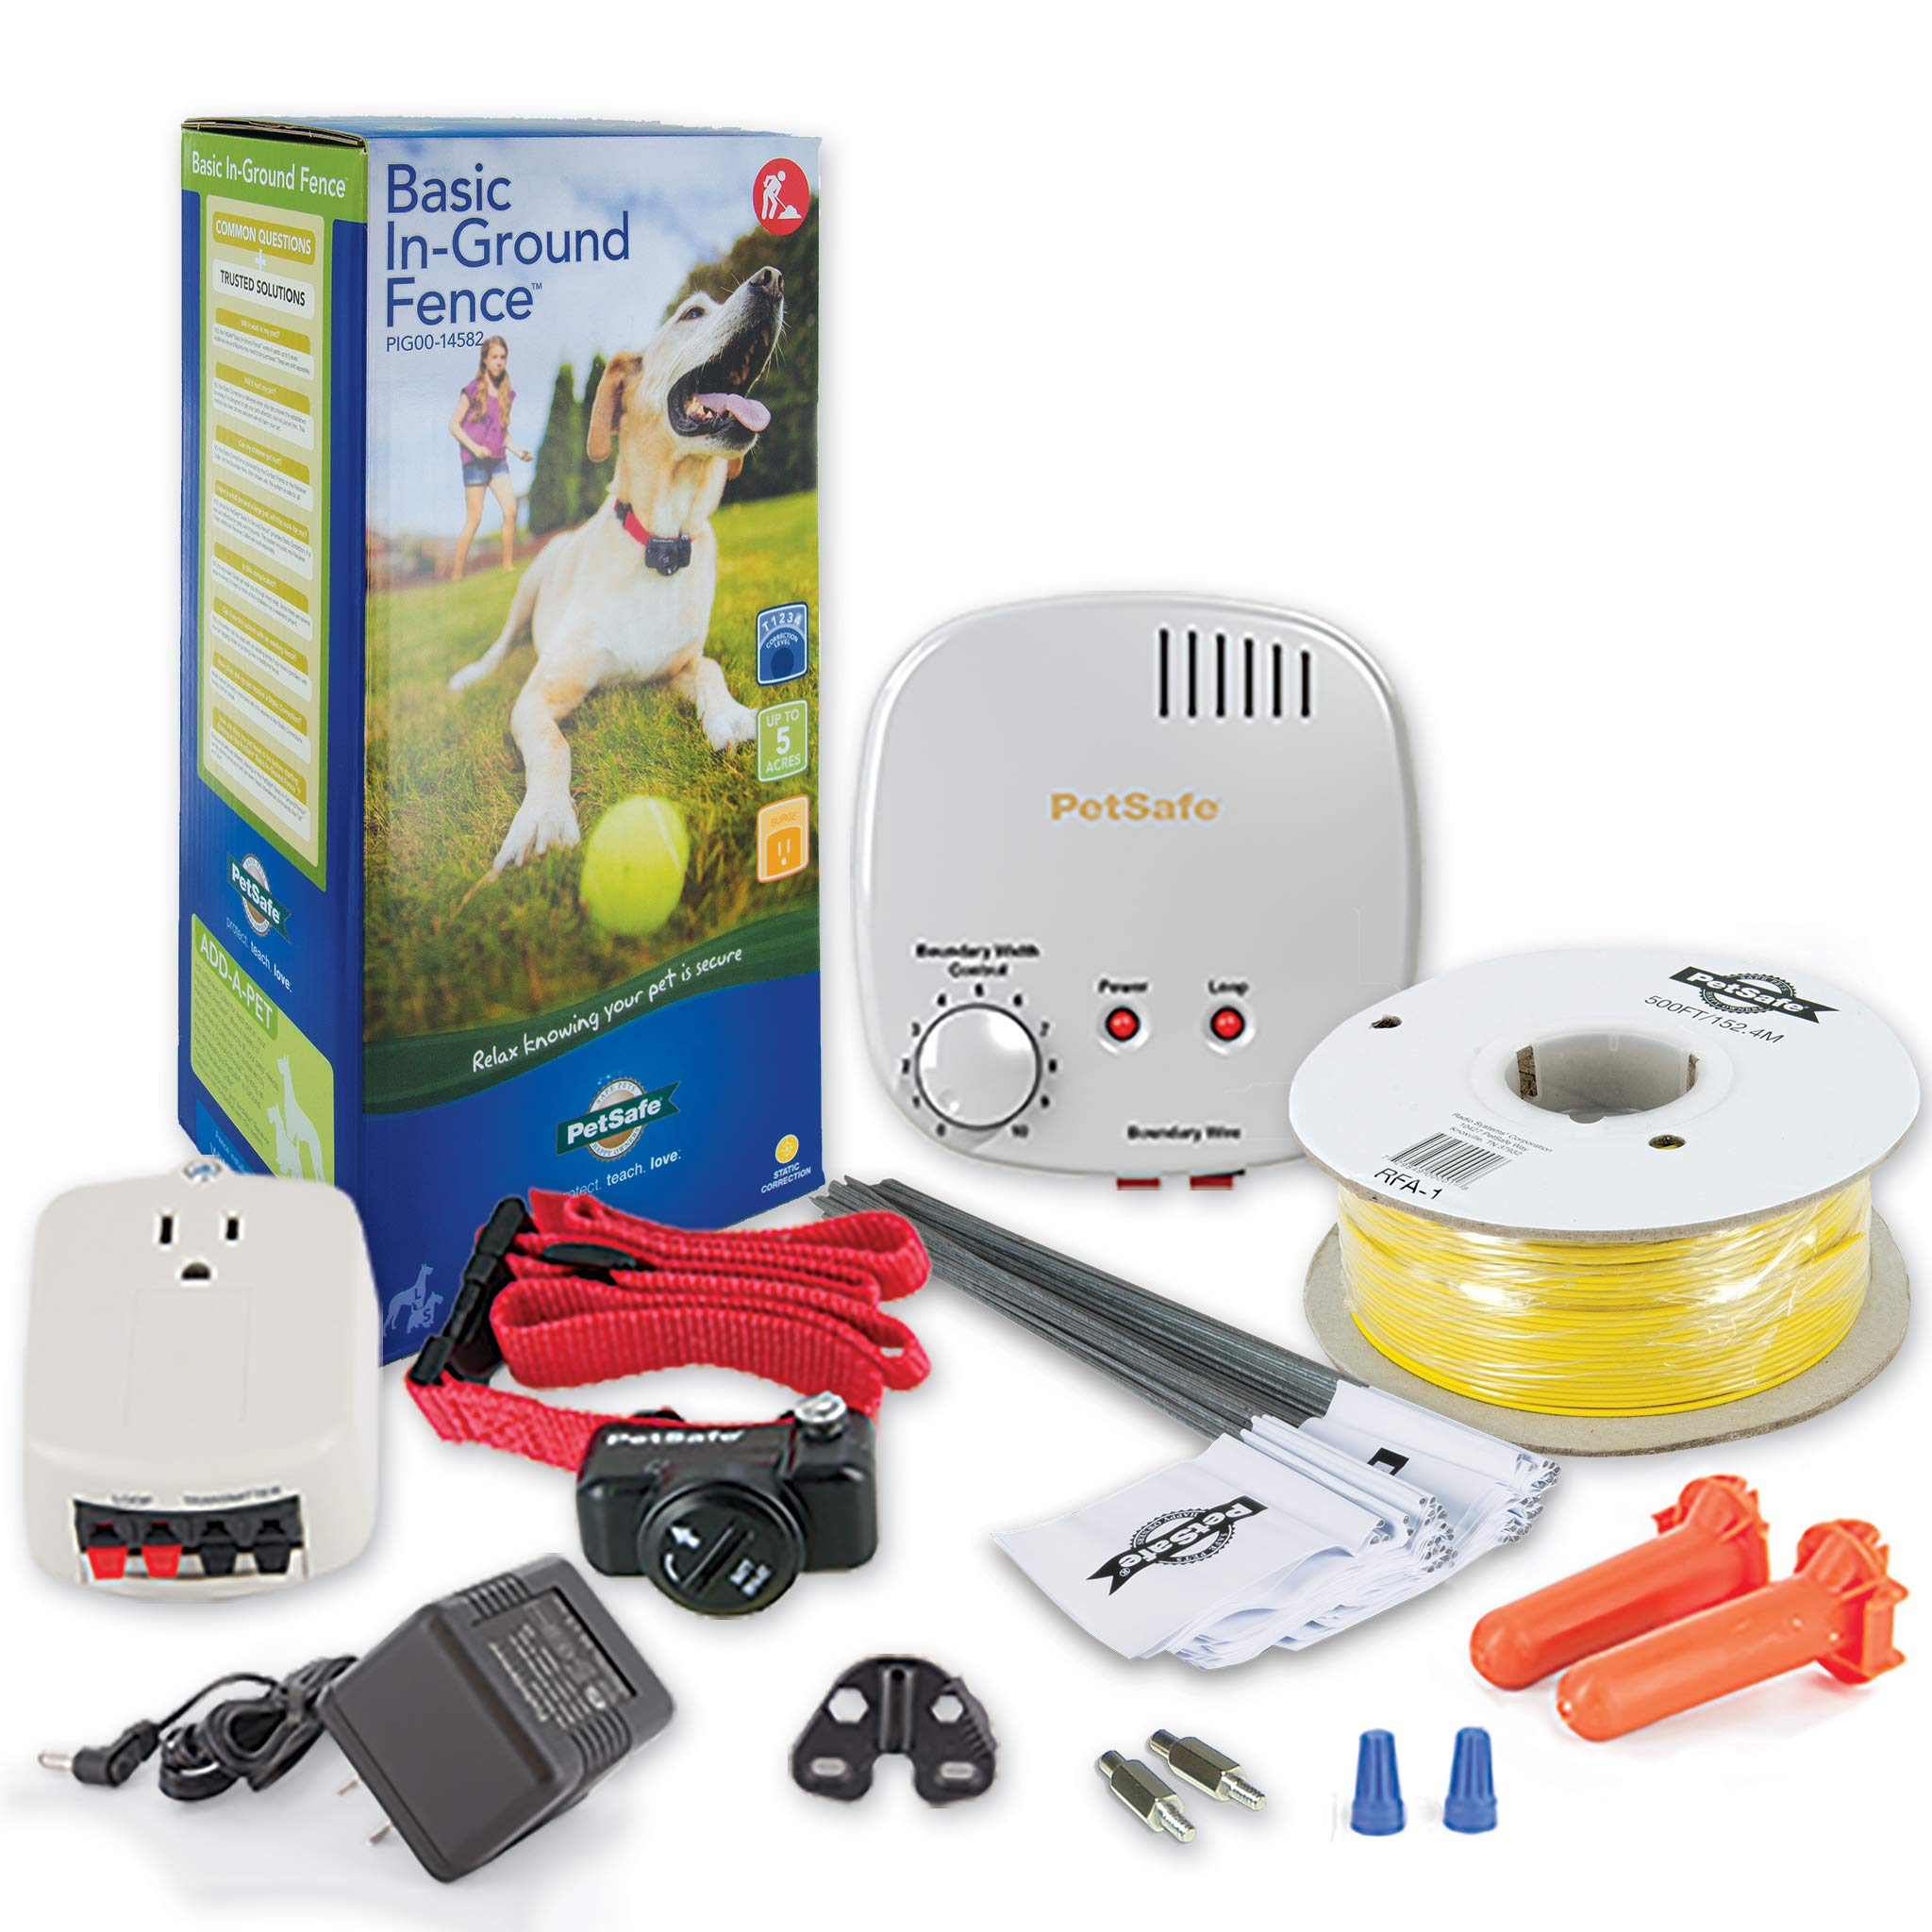 PetSafe Basic In-Ground Dog and Cat Fence - from The Parent Company of Invisible Fence Brand - Underground Electric Pet Fence by PetSafe